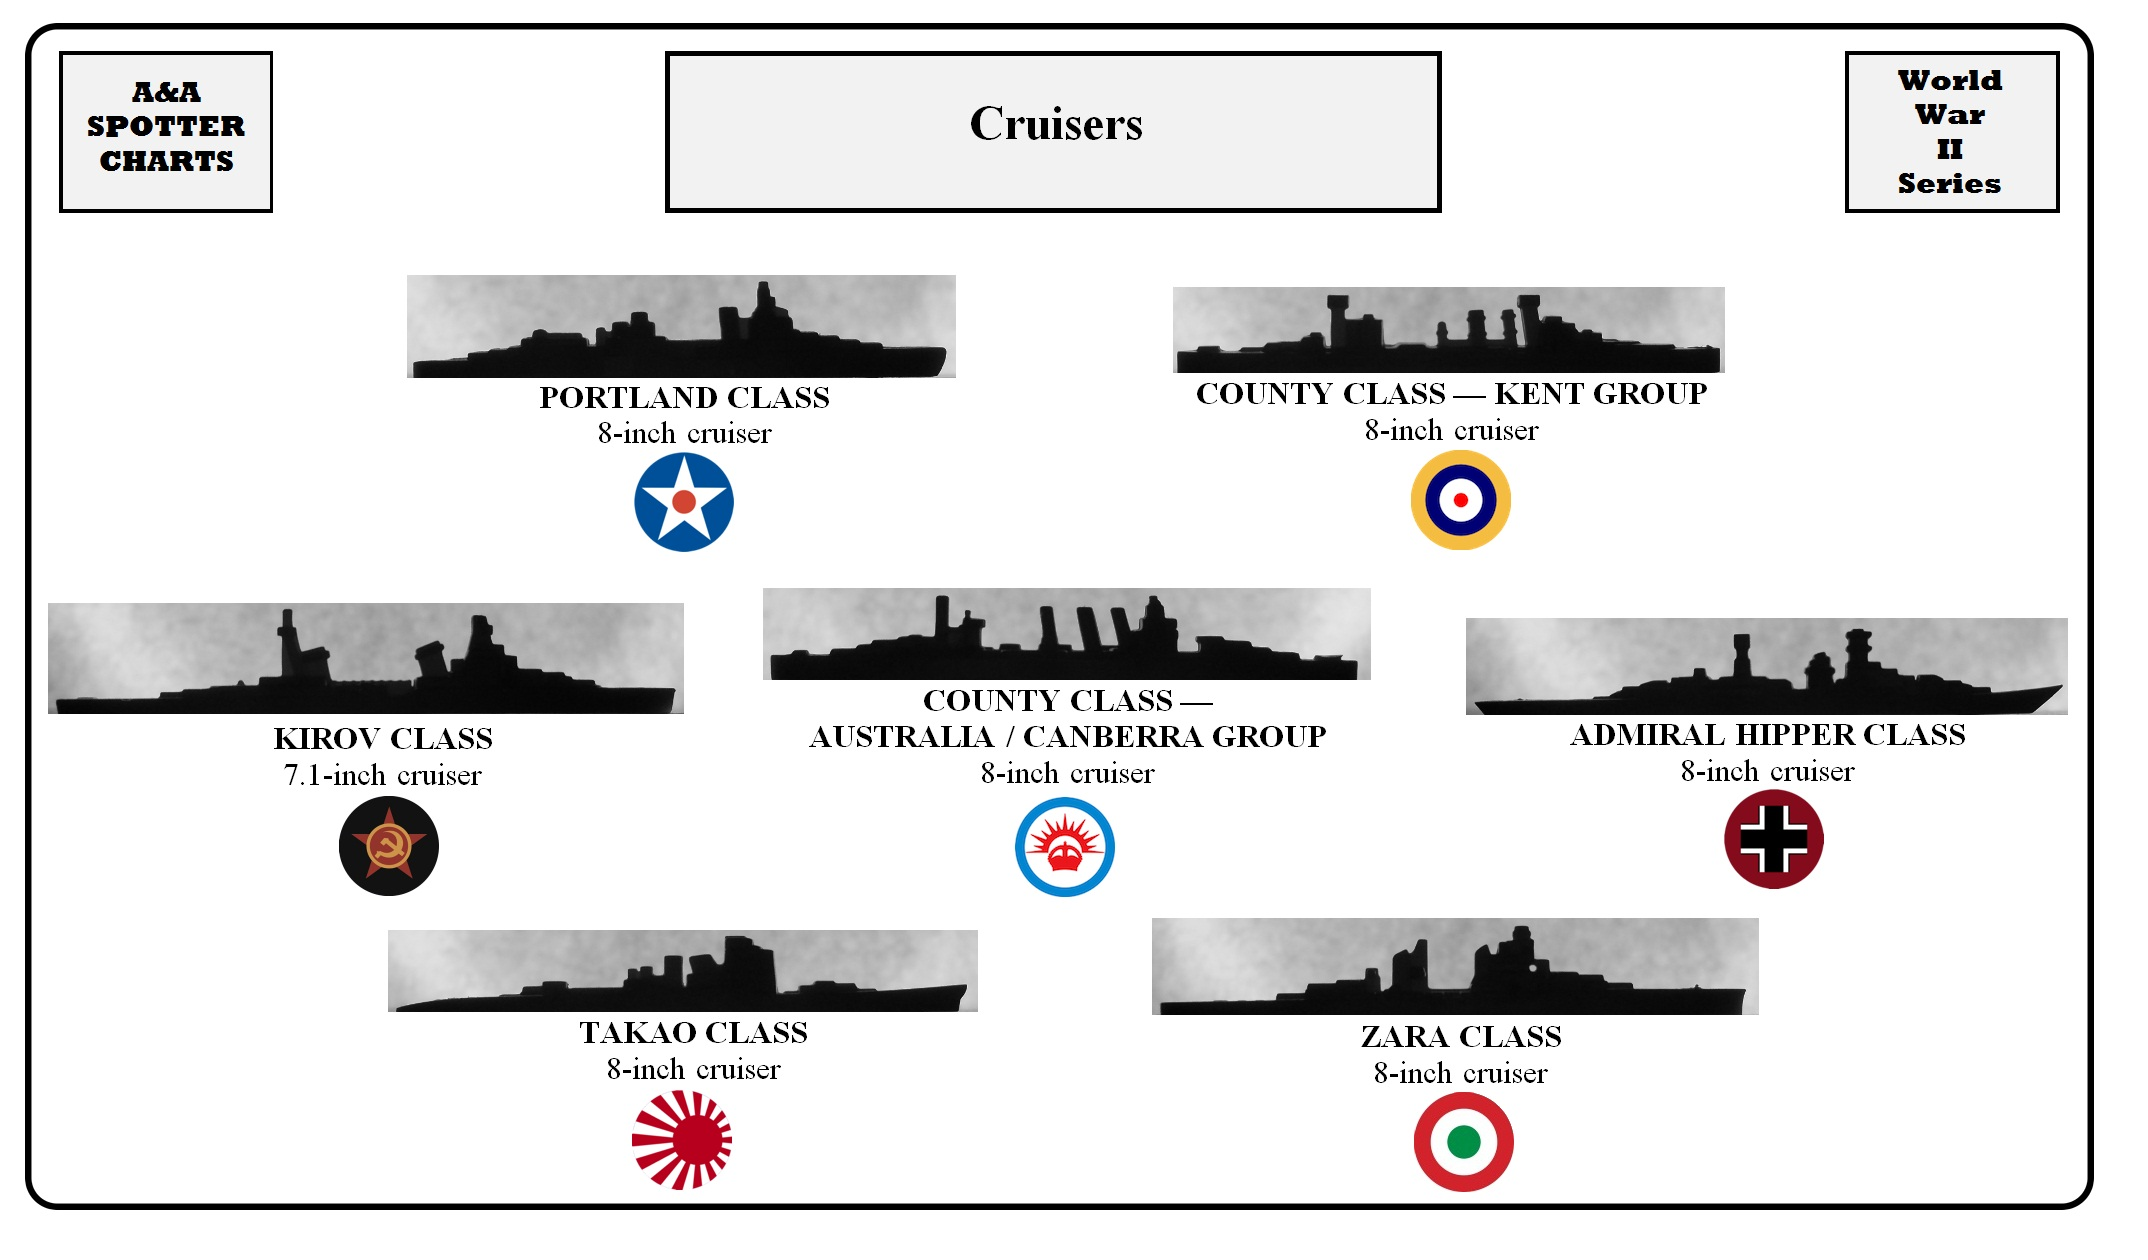 WW2-Sea-Cruisers.jpg